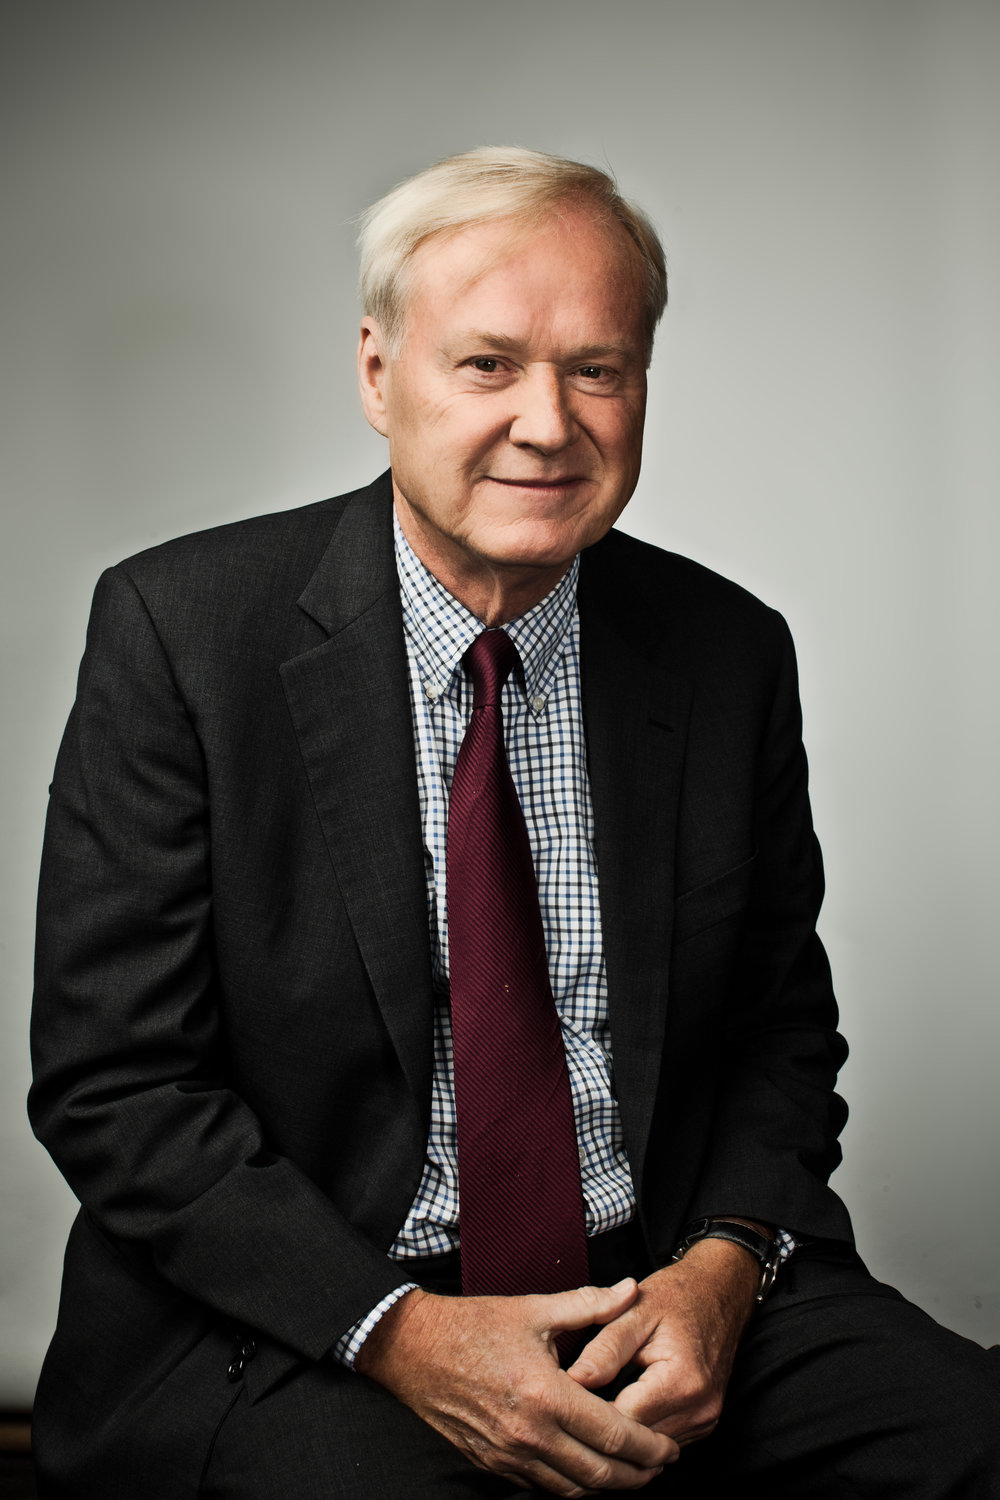 Journalist Chris Matthews